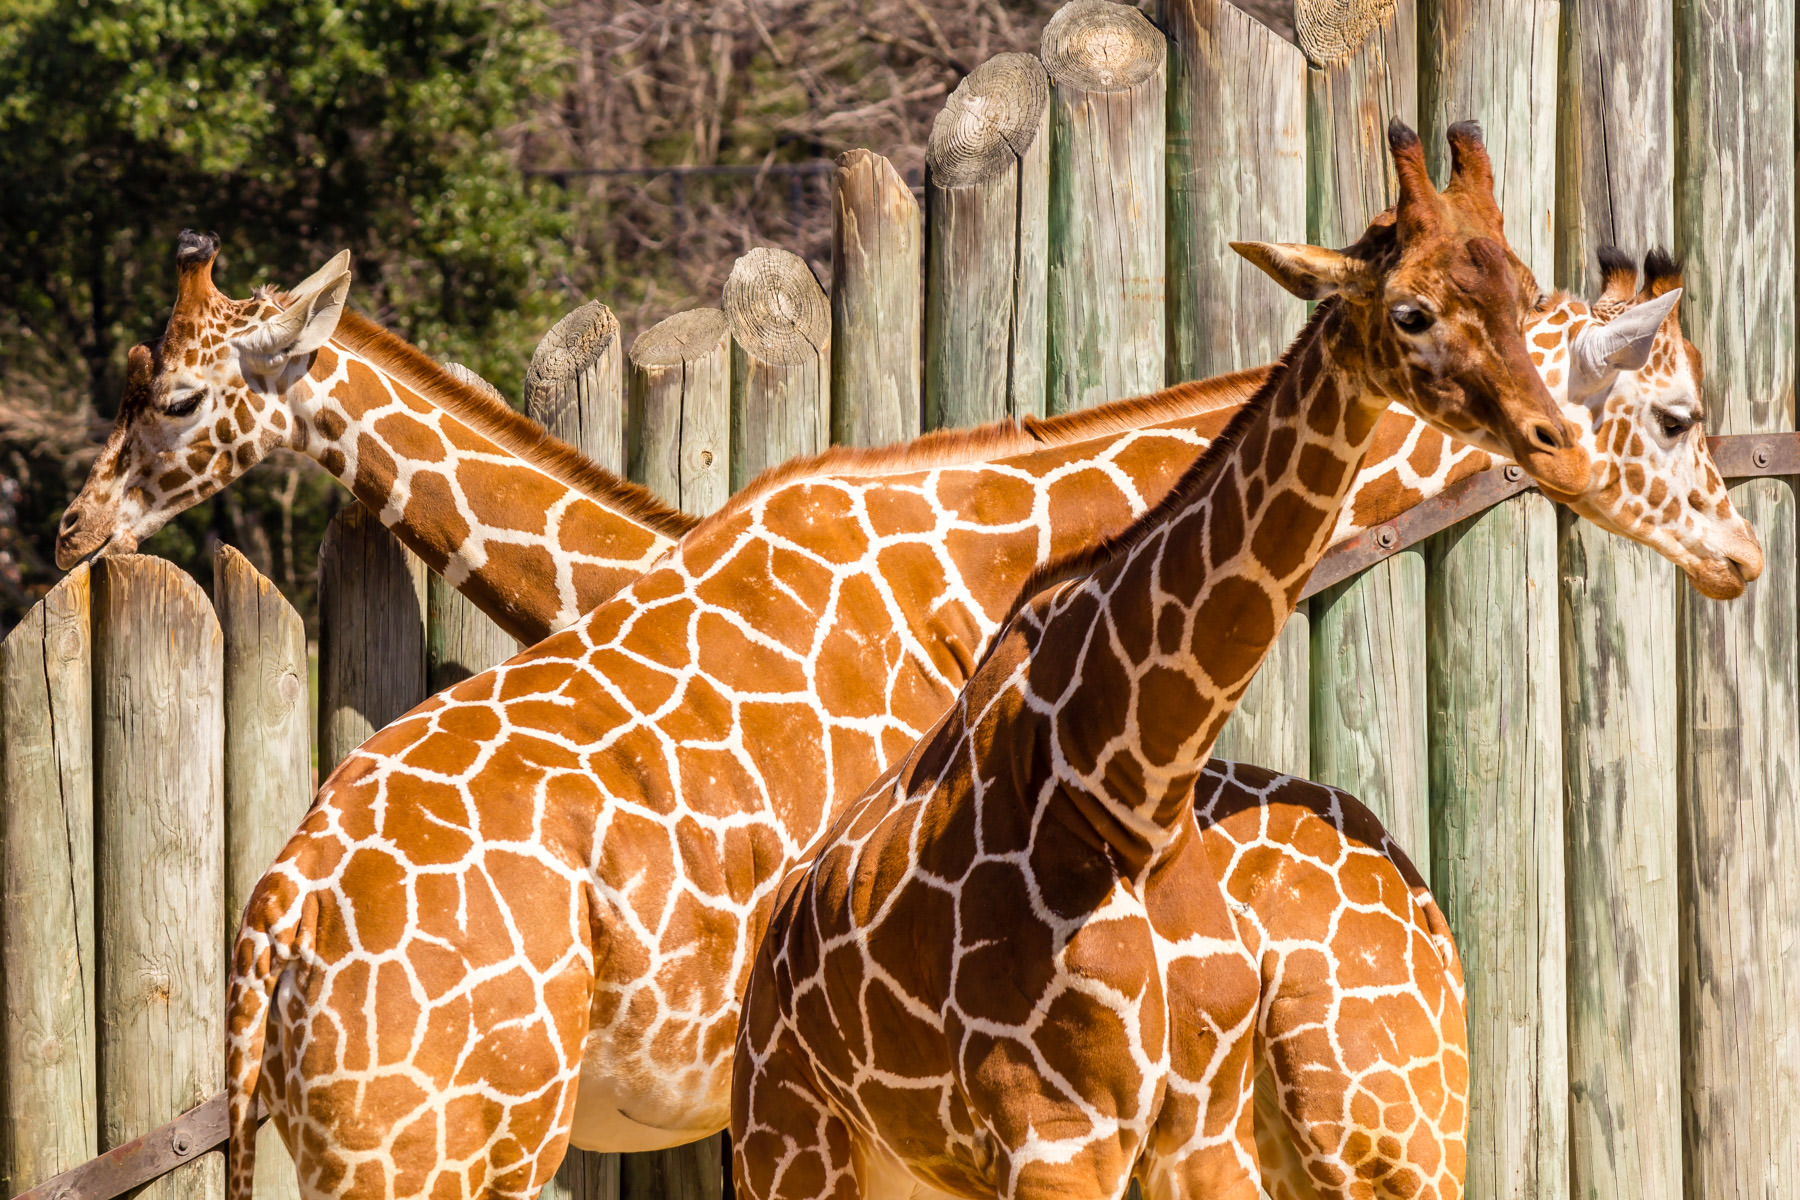 A trio of giraffes at Tyler, Texas' Caldwell Zoo.